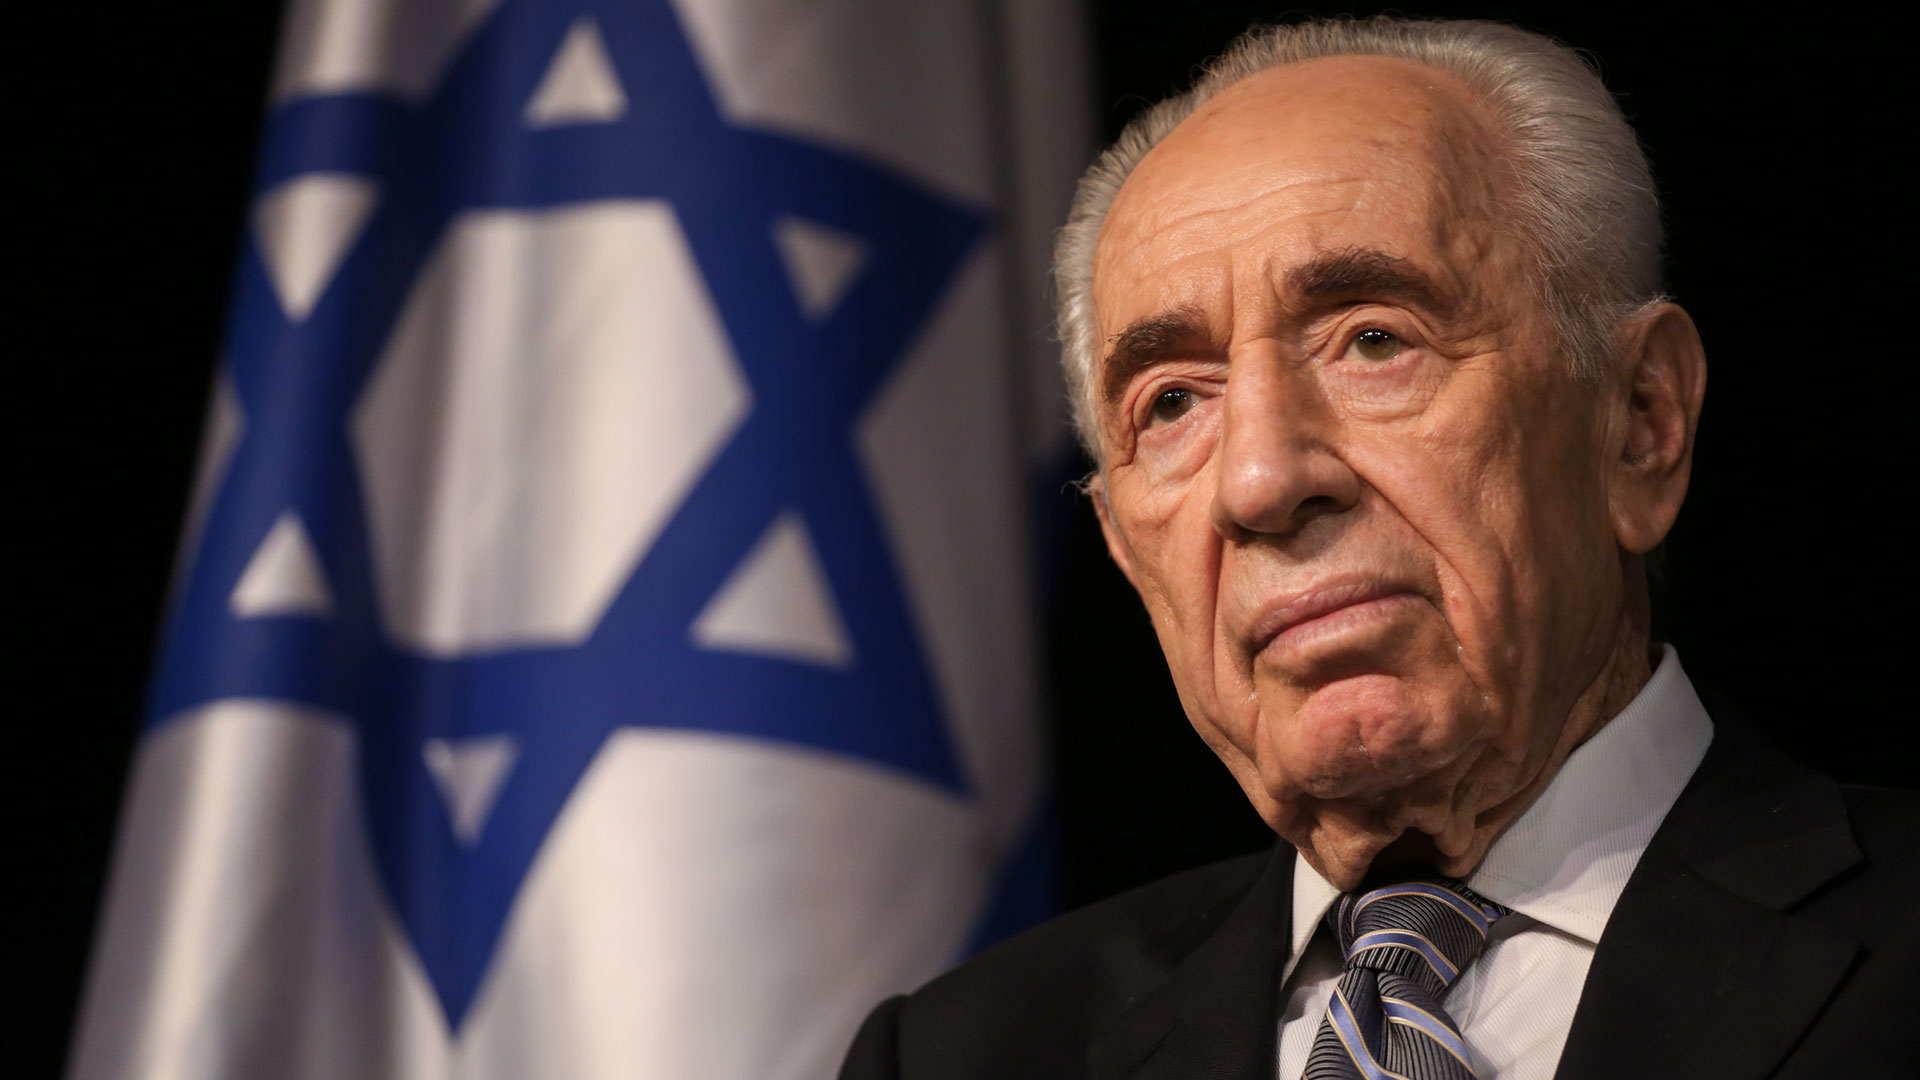 World Leaders Pay Final Respects To Shimon Peres: 'Israel Grieves For Him' [VIDEOS]